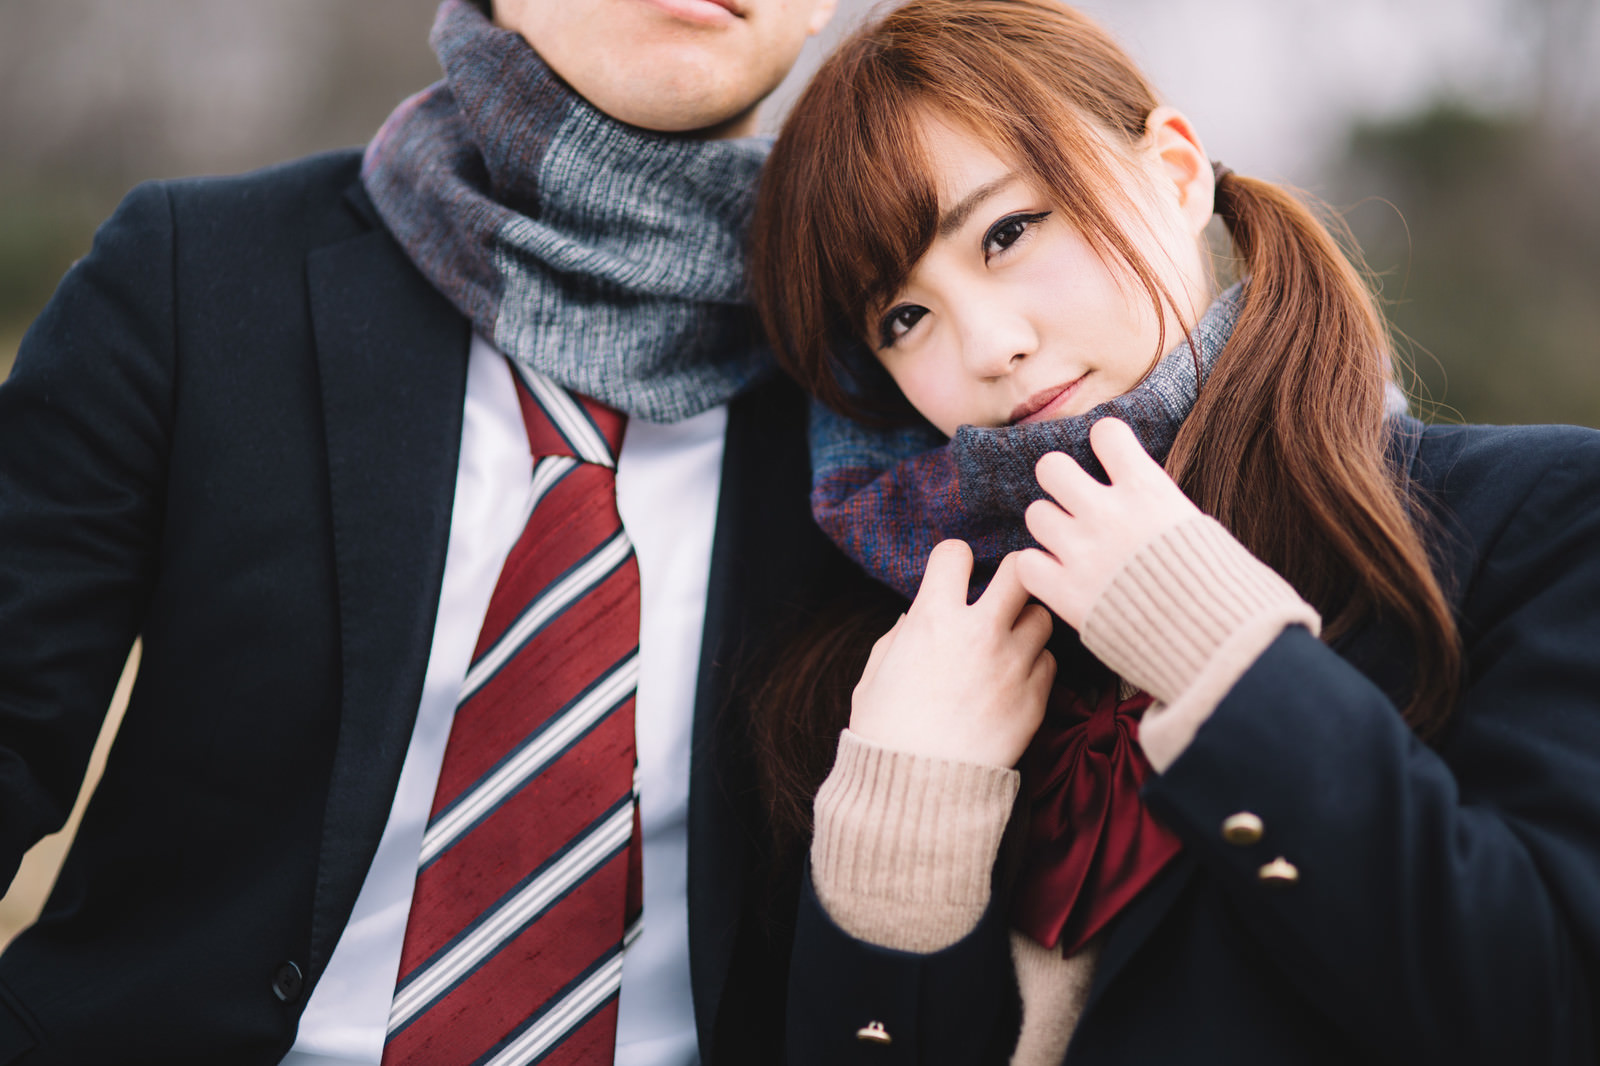 00 PP57 PP TP V winter couple pakutaso yuka